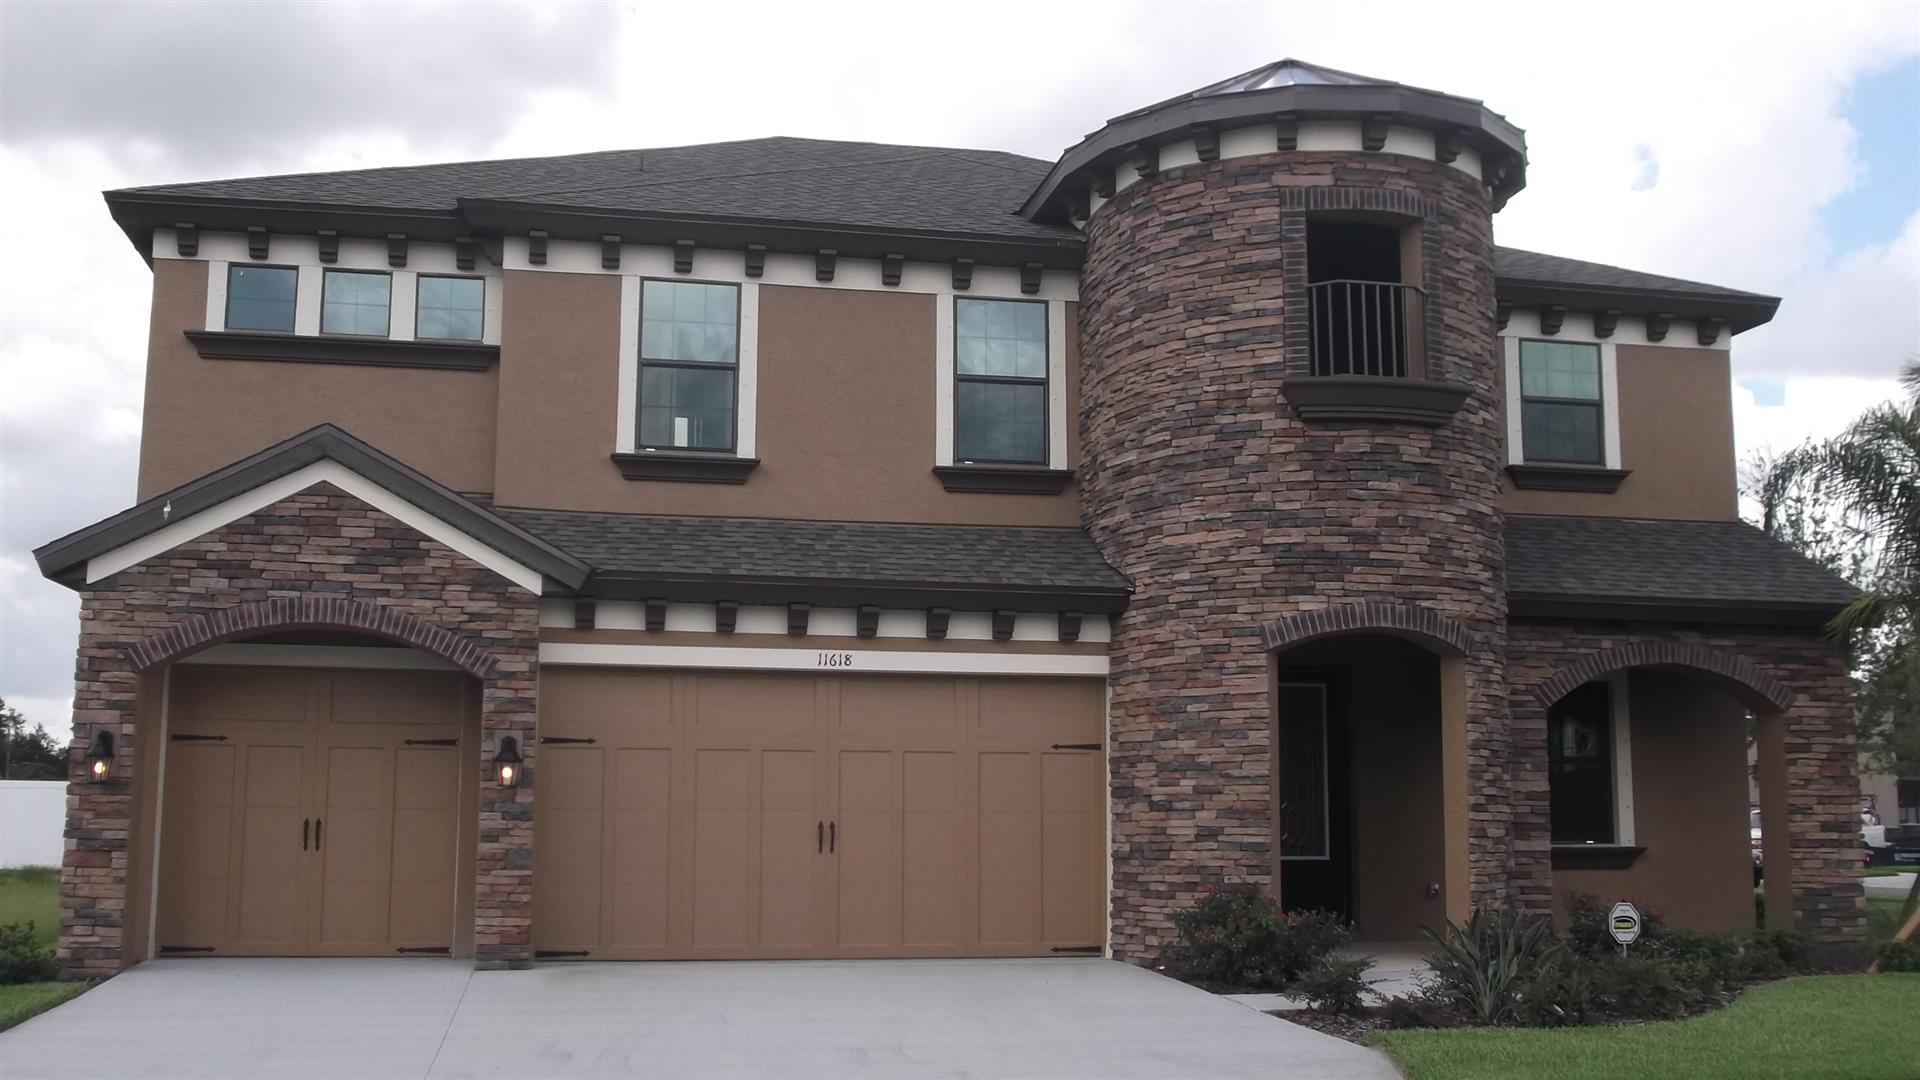 riverview real estate riverview fl homes for sale at